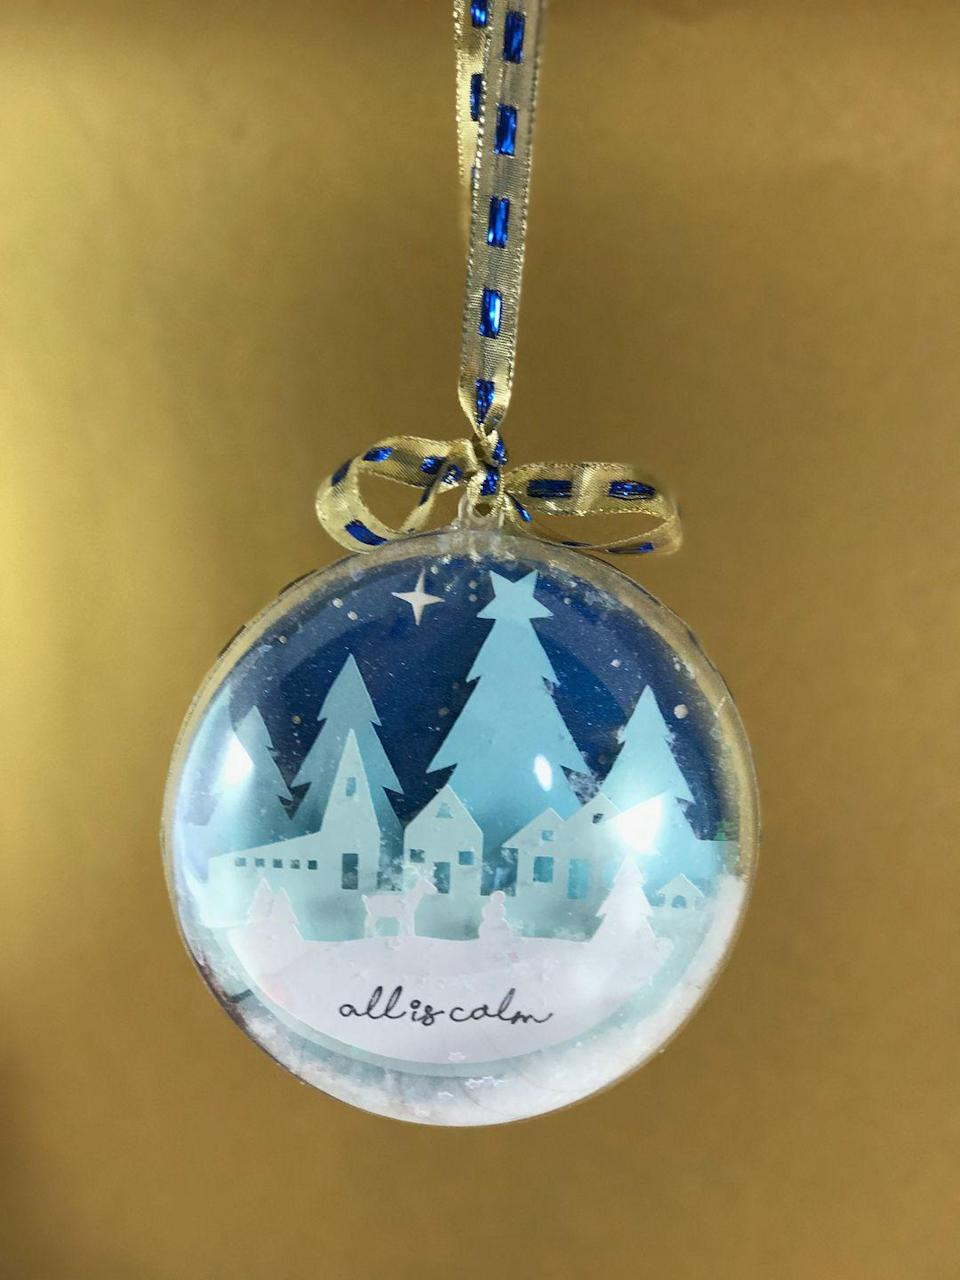 """<p>These gorgeous two-sided ornaments feature different scenes on each side with plenty of glitter factor. They make beautiful one-of-a-kind gifts.</p><p><strong>Get the tutorial at <a href=""""https://jennifermaker.com/diy-glitter-ball-ornament/"""" rel=""""nofollow noopener"""" target=""""_blank"""" data-ylk=""""slk:Jennifer Maker"""" class=""""link rapid-noclick-resp"""">Jennifer Maker</a>. </strong></p><p><a class=""""link rapid-noclick-resp"""" href=""""https://www.amazon.com/Sulyn-0-8oz-Glitter-Flakes-Crystal/dp/B009CFXH0O/?tag=syn-yahoo-20&ascsubtag=%5Bartid%7C10050.g.28831556%5Bsrc%7Cyahoo-us"""" rel=""""nofollow noopener"""" target=""""_blank"""" data-ylk=""""slk:SHOP GLITTER FLAKES"""">SHOP GLITTER FLAKES</a></p>"""